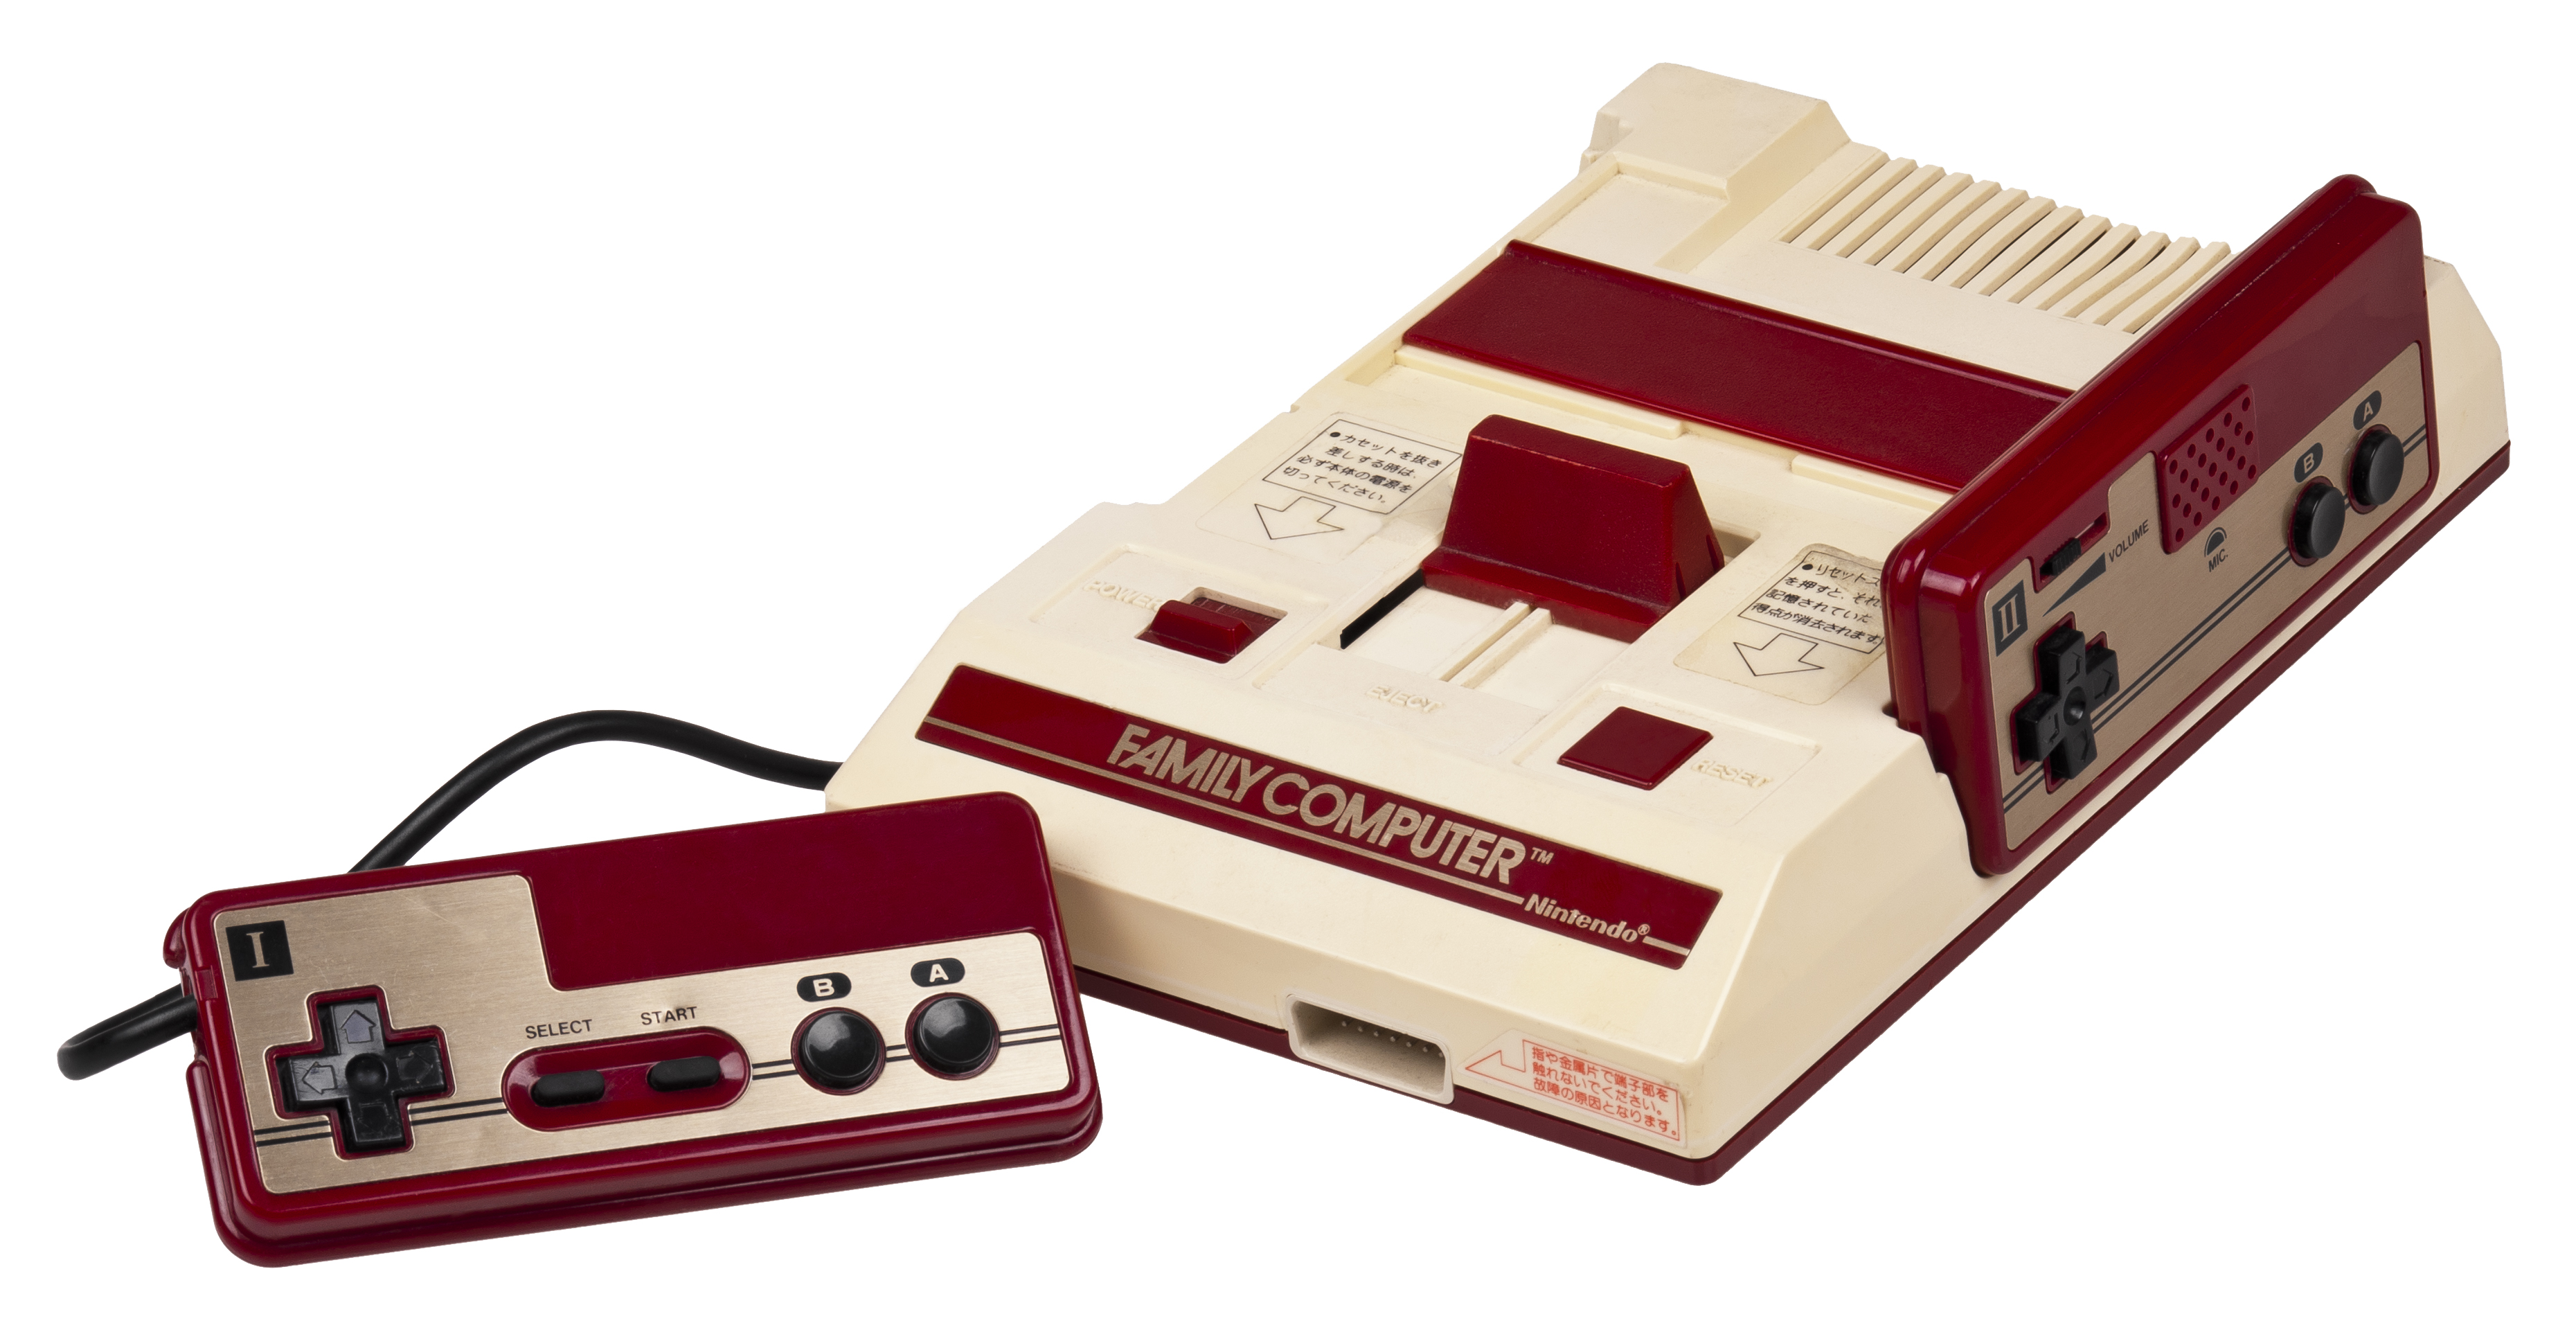 """A Japanese Famicom (short for """"Family Computer"""") video game console made by Nintendo."""